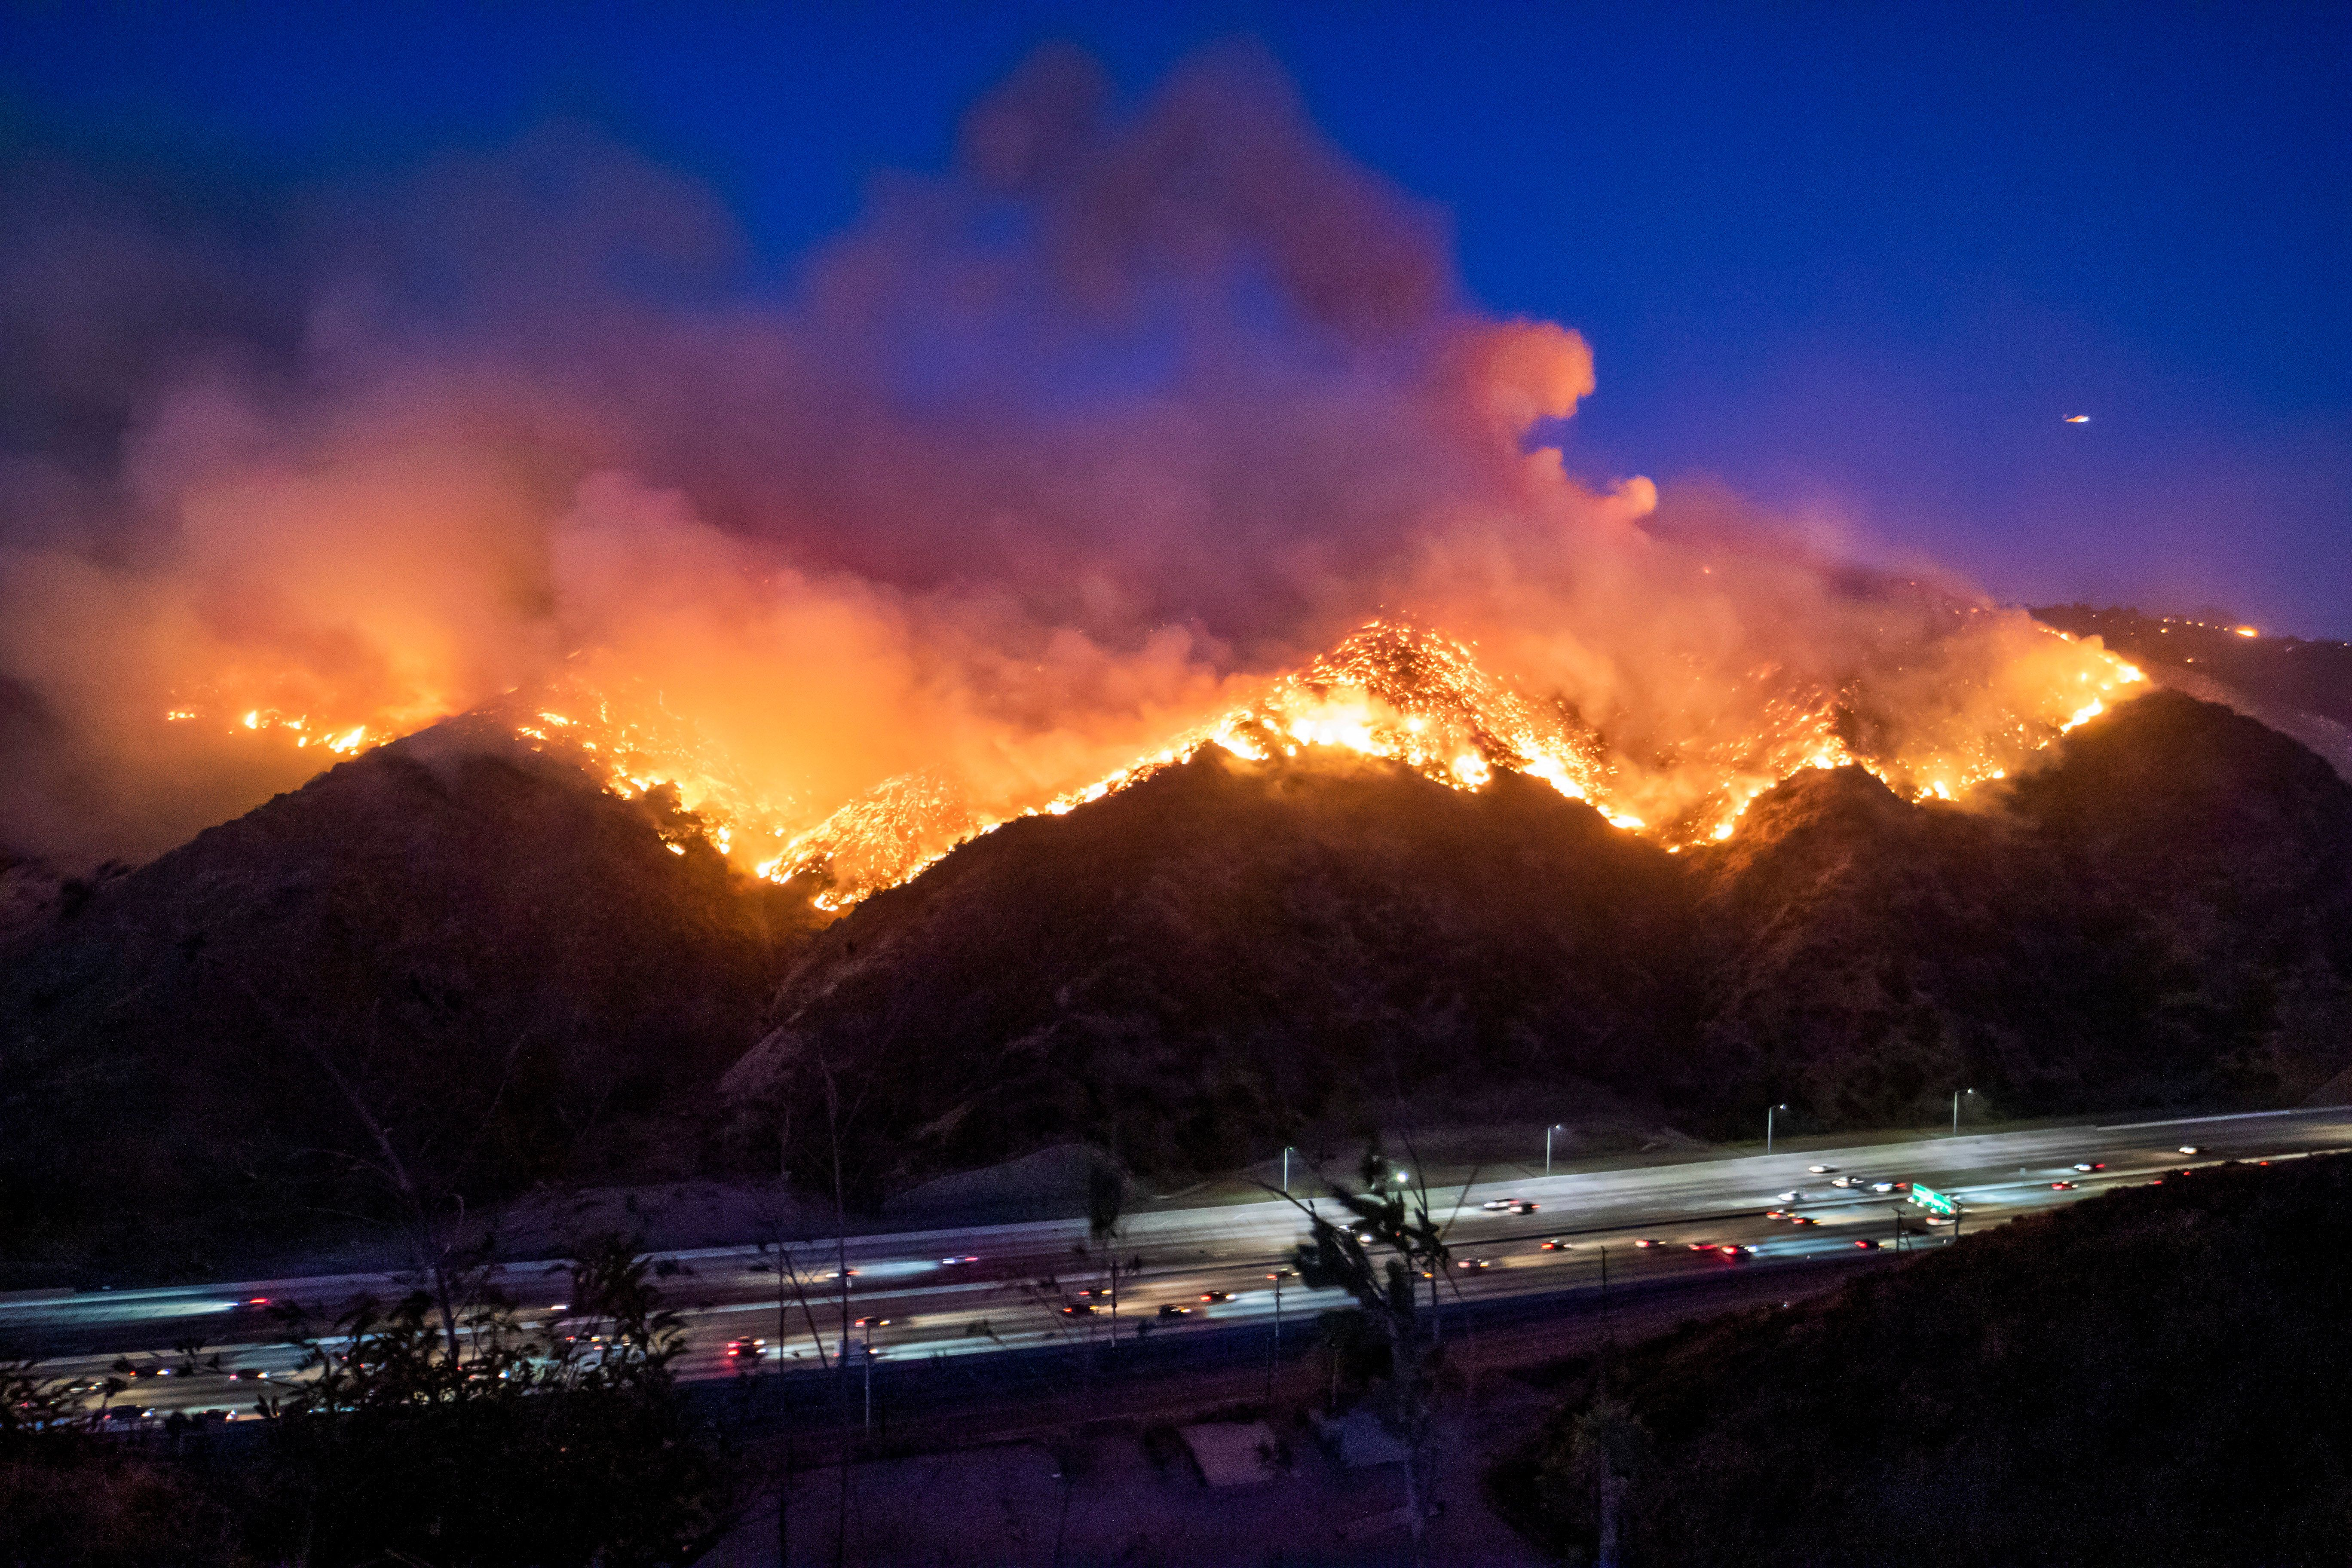 Fears Of More Extreme Weather As Kincade Fire Swells California Wildfires California West Los Angeles